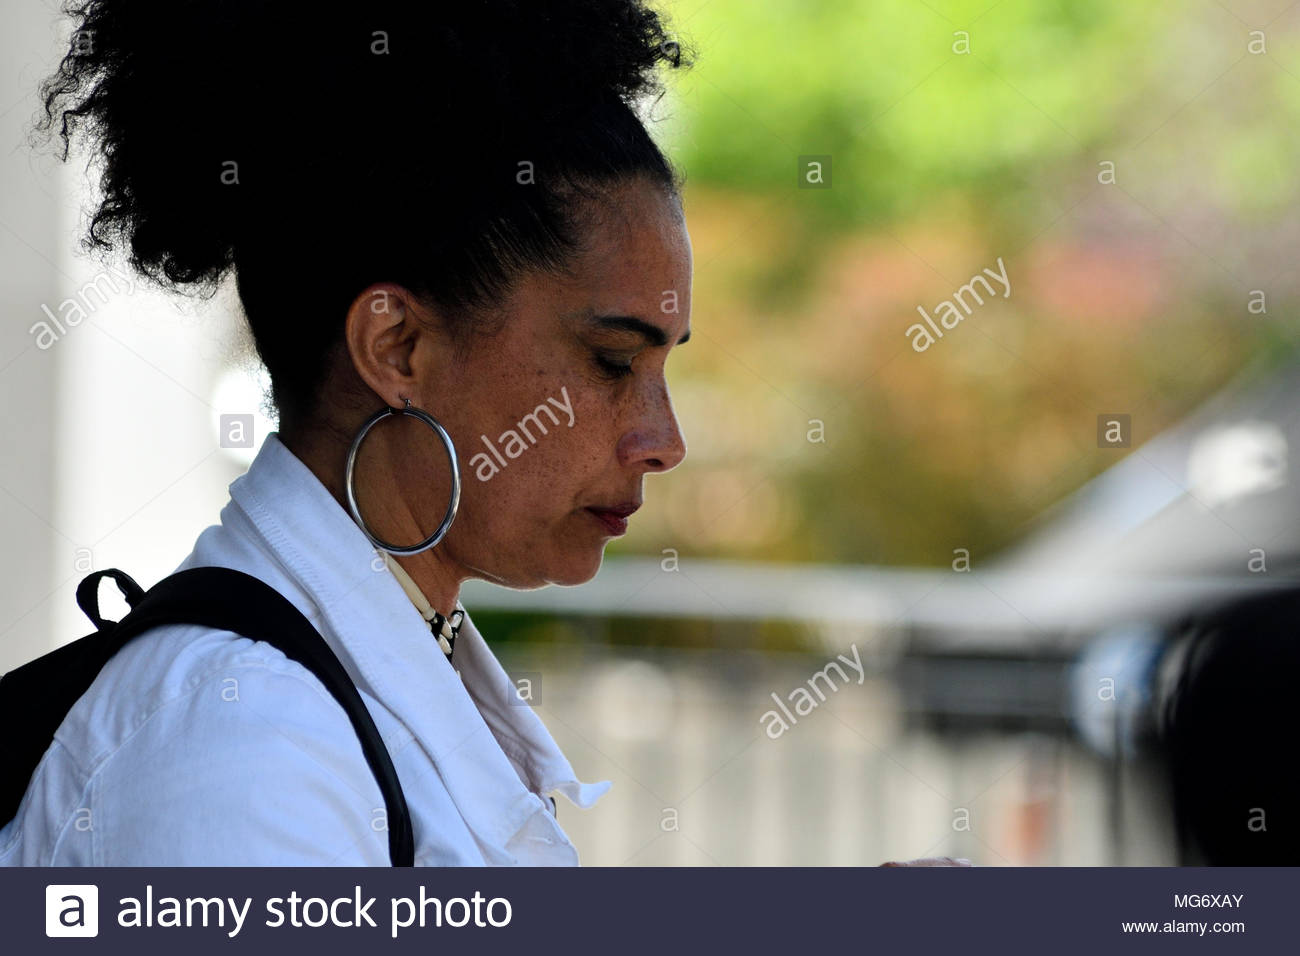 Norristown, USA. 26th Apr, 2018. Lilli Bernard departs the court house after the guilty verdict in the Bill Cosby sexual assault trial, at Montgomery County Court House in Norristown, PA, USA, on April 26, 2018. Credit: Bastiaan Slabbers/Alamy Live News - Stock Image